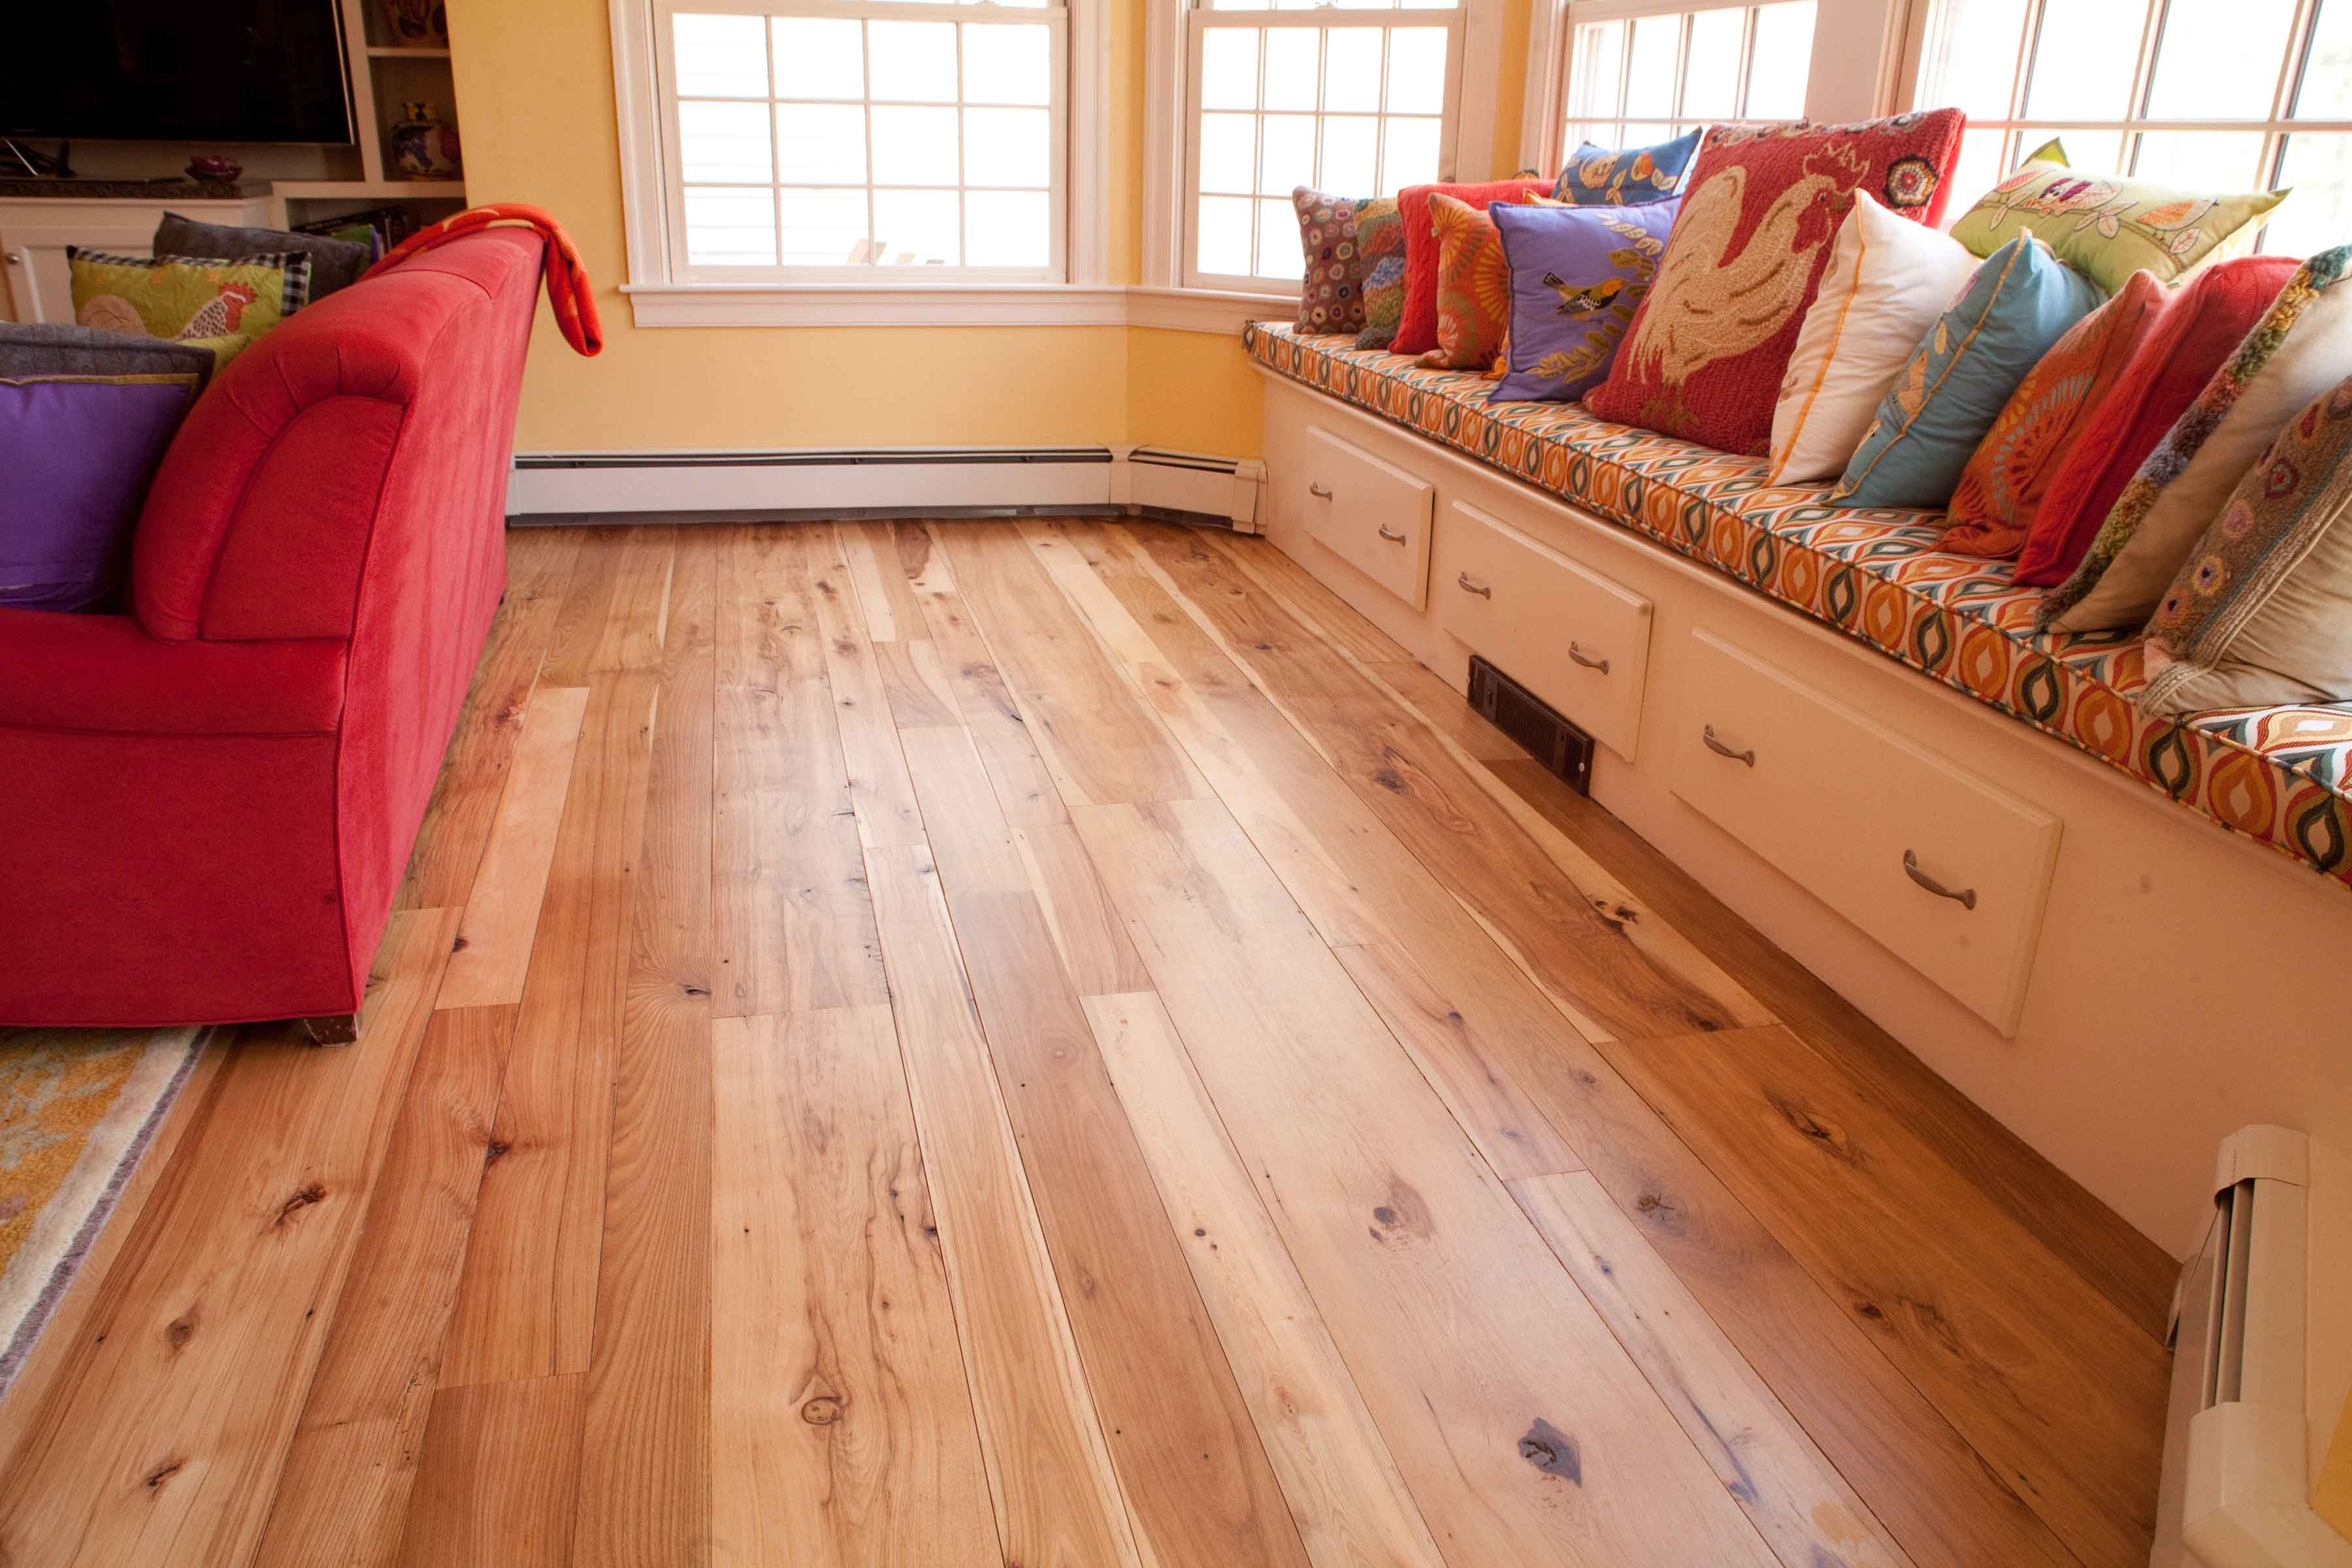 Longleaf Lumber - Reclaimed Hickory Mixed-Width Reclaimed Flooring